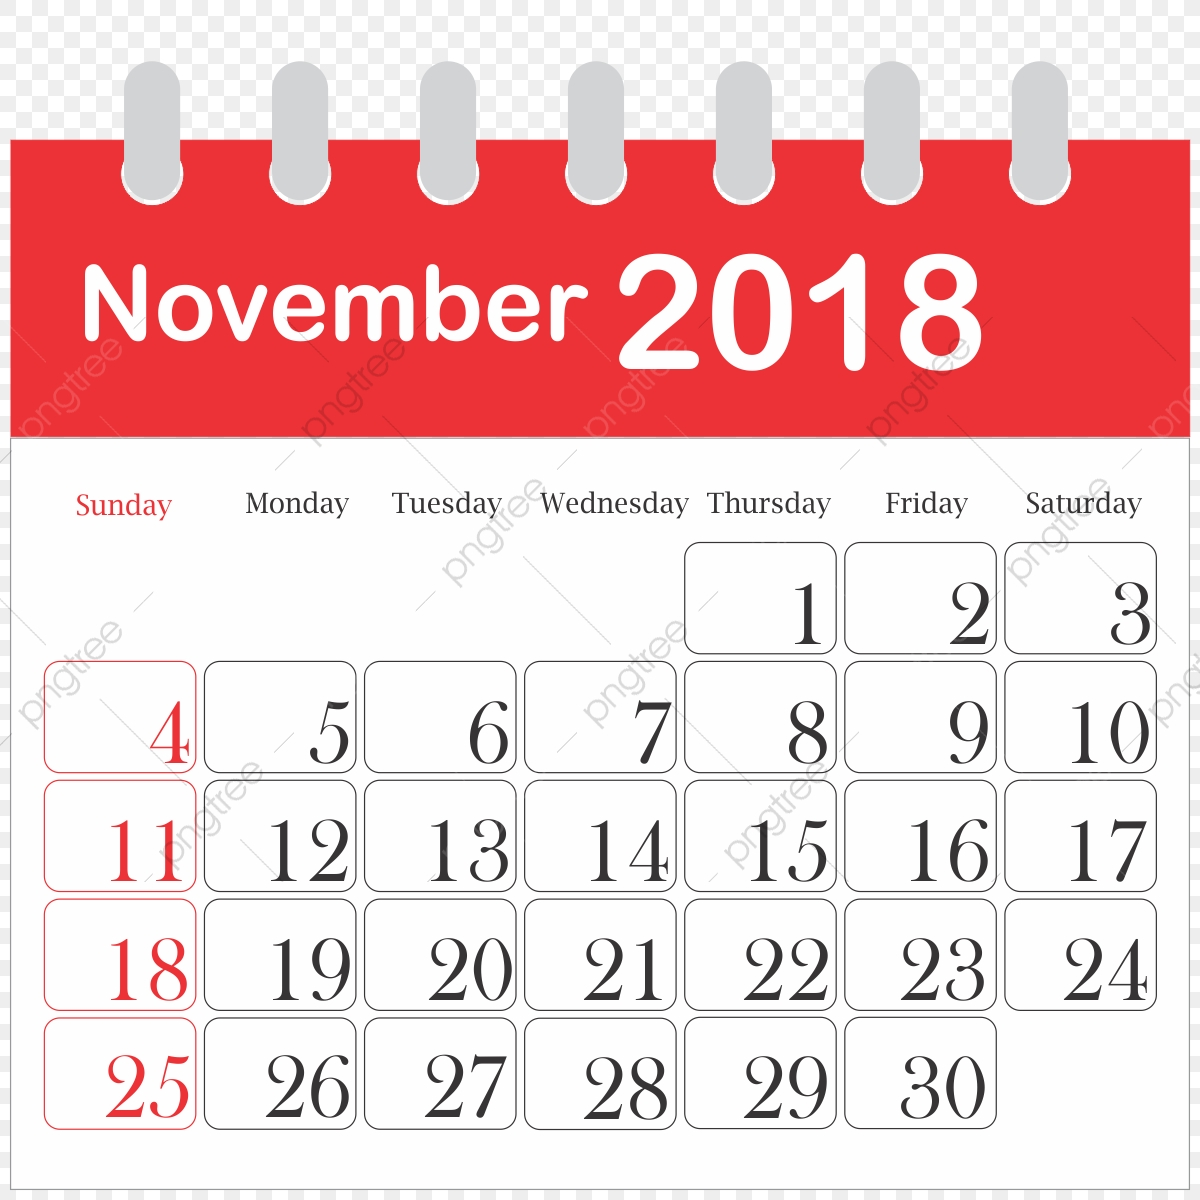 Month Calendar 2018 November, 2018, Icon, Daily PNG.